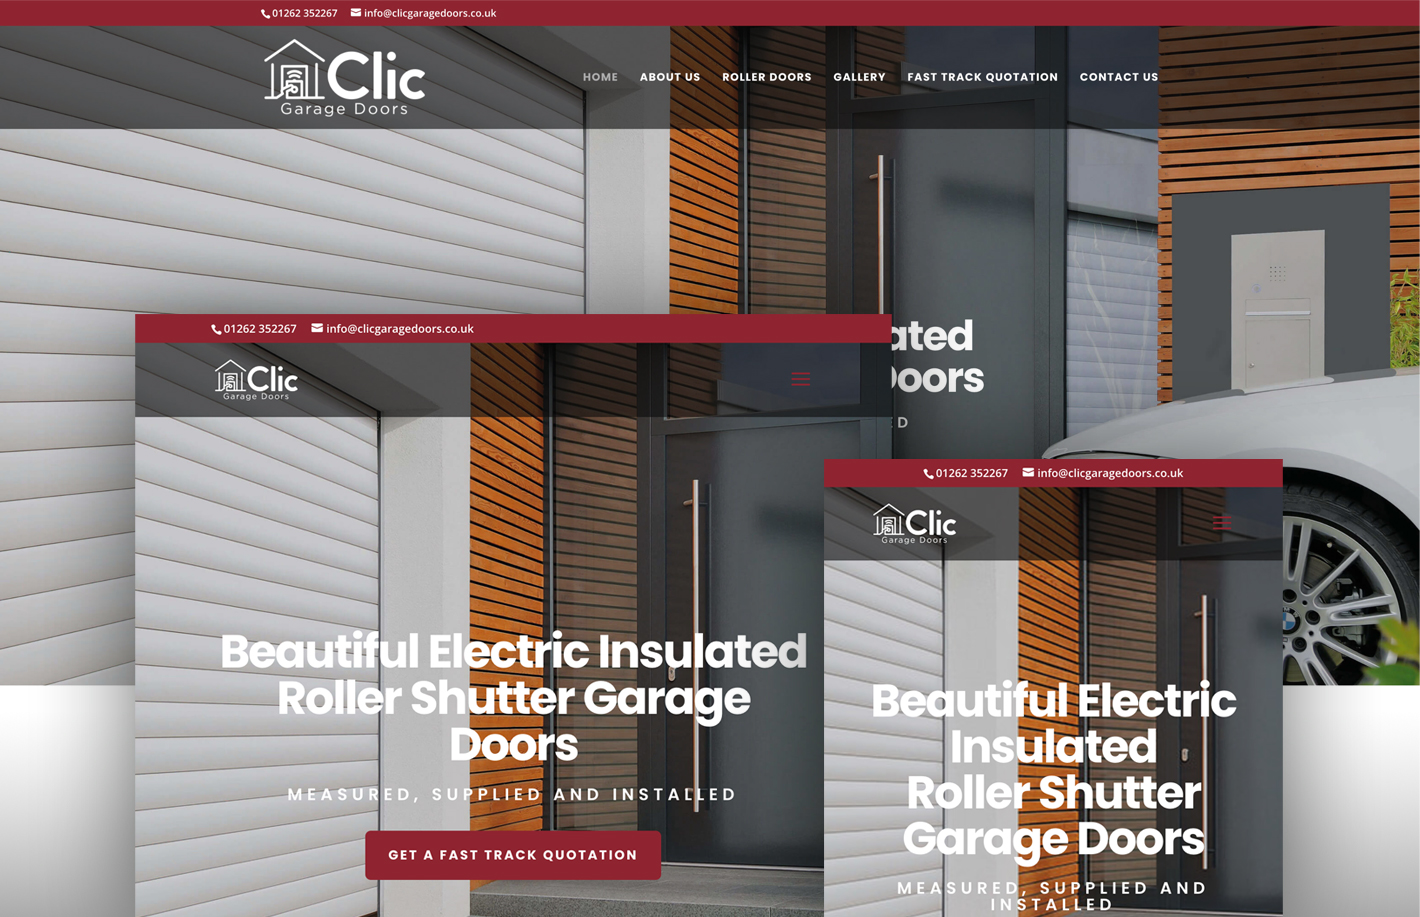 clic-garage-doors-home